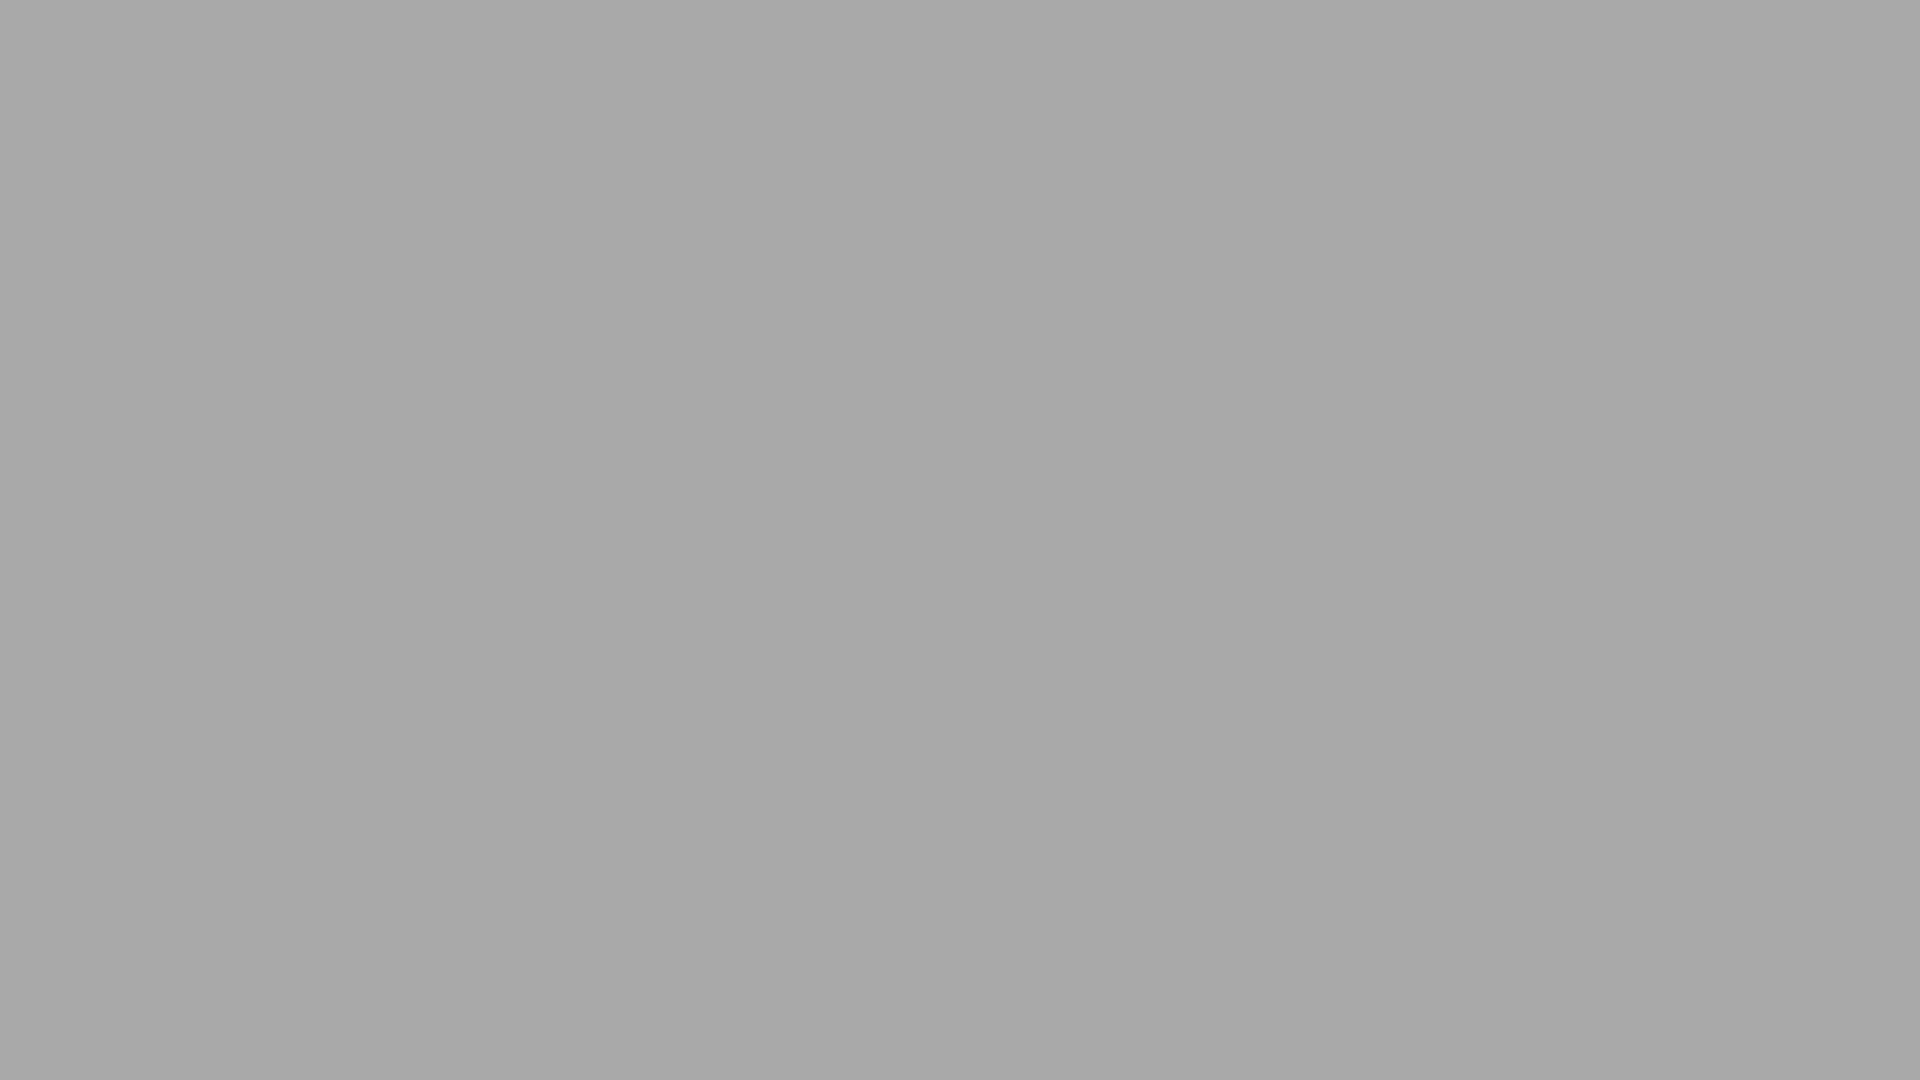 Solid gray wallpaper 50 images - Solid light gray wallpaper ...